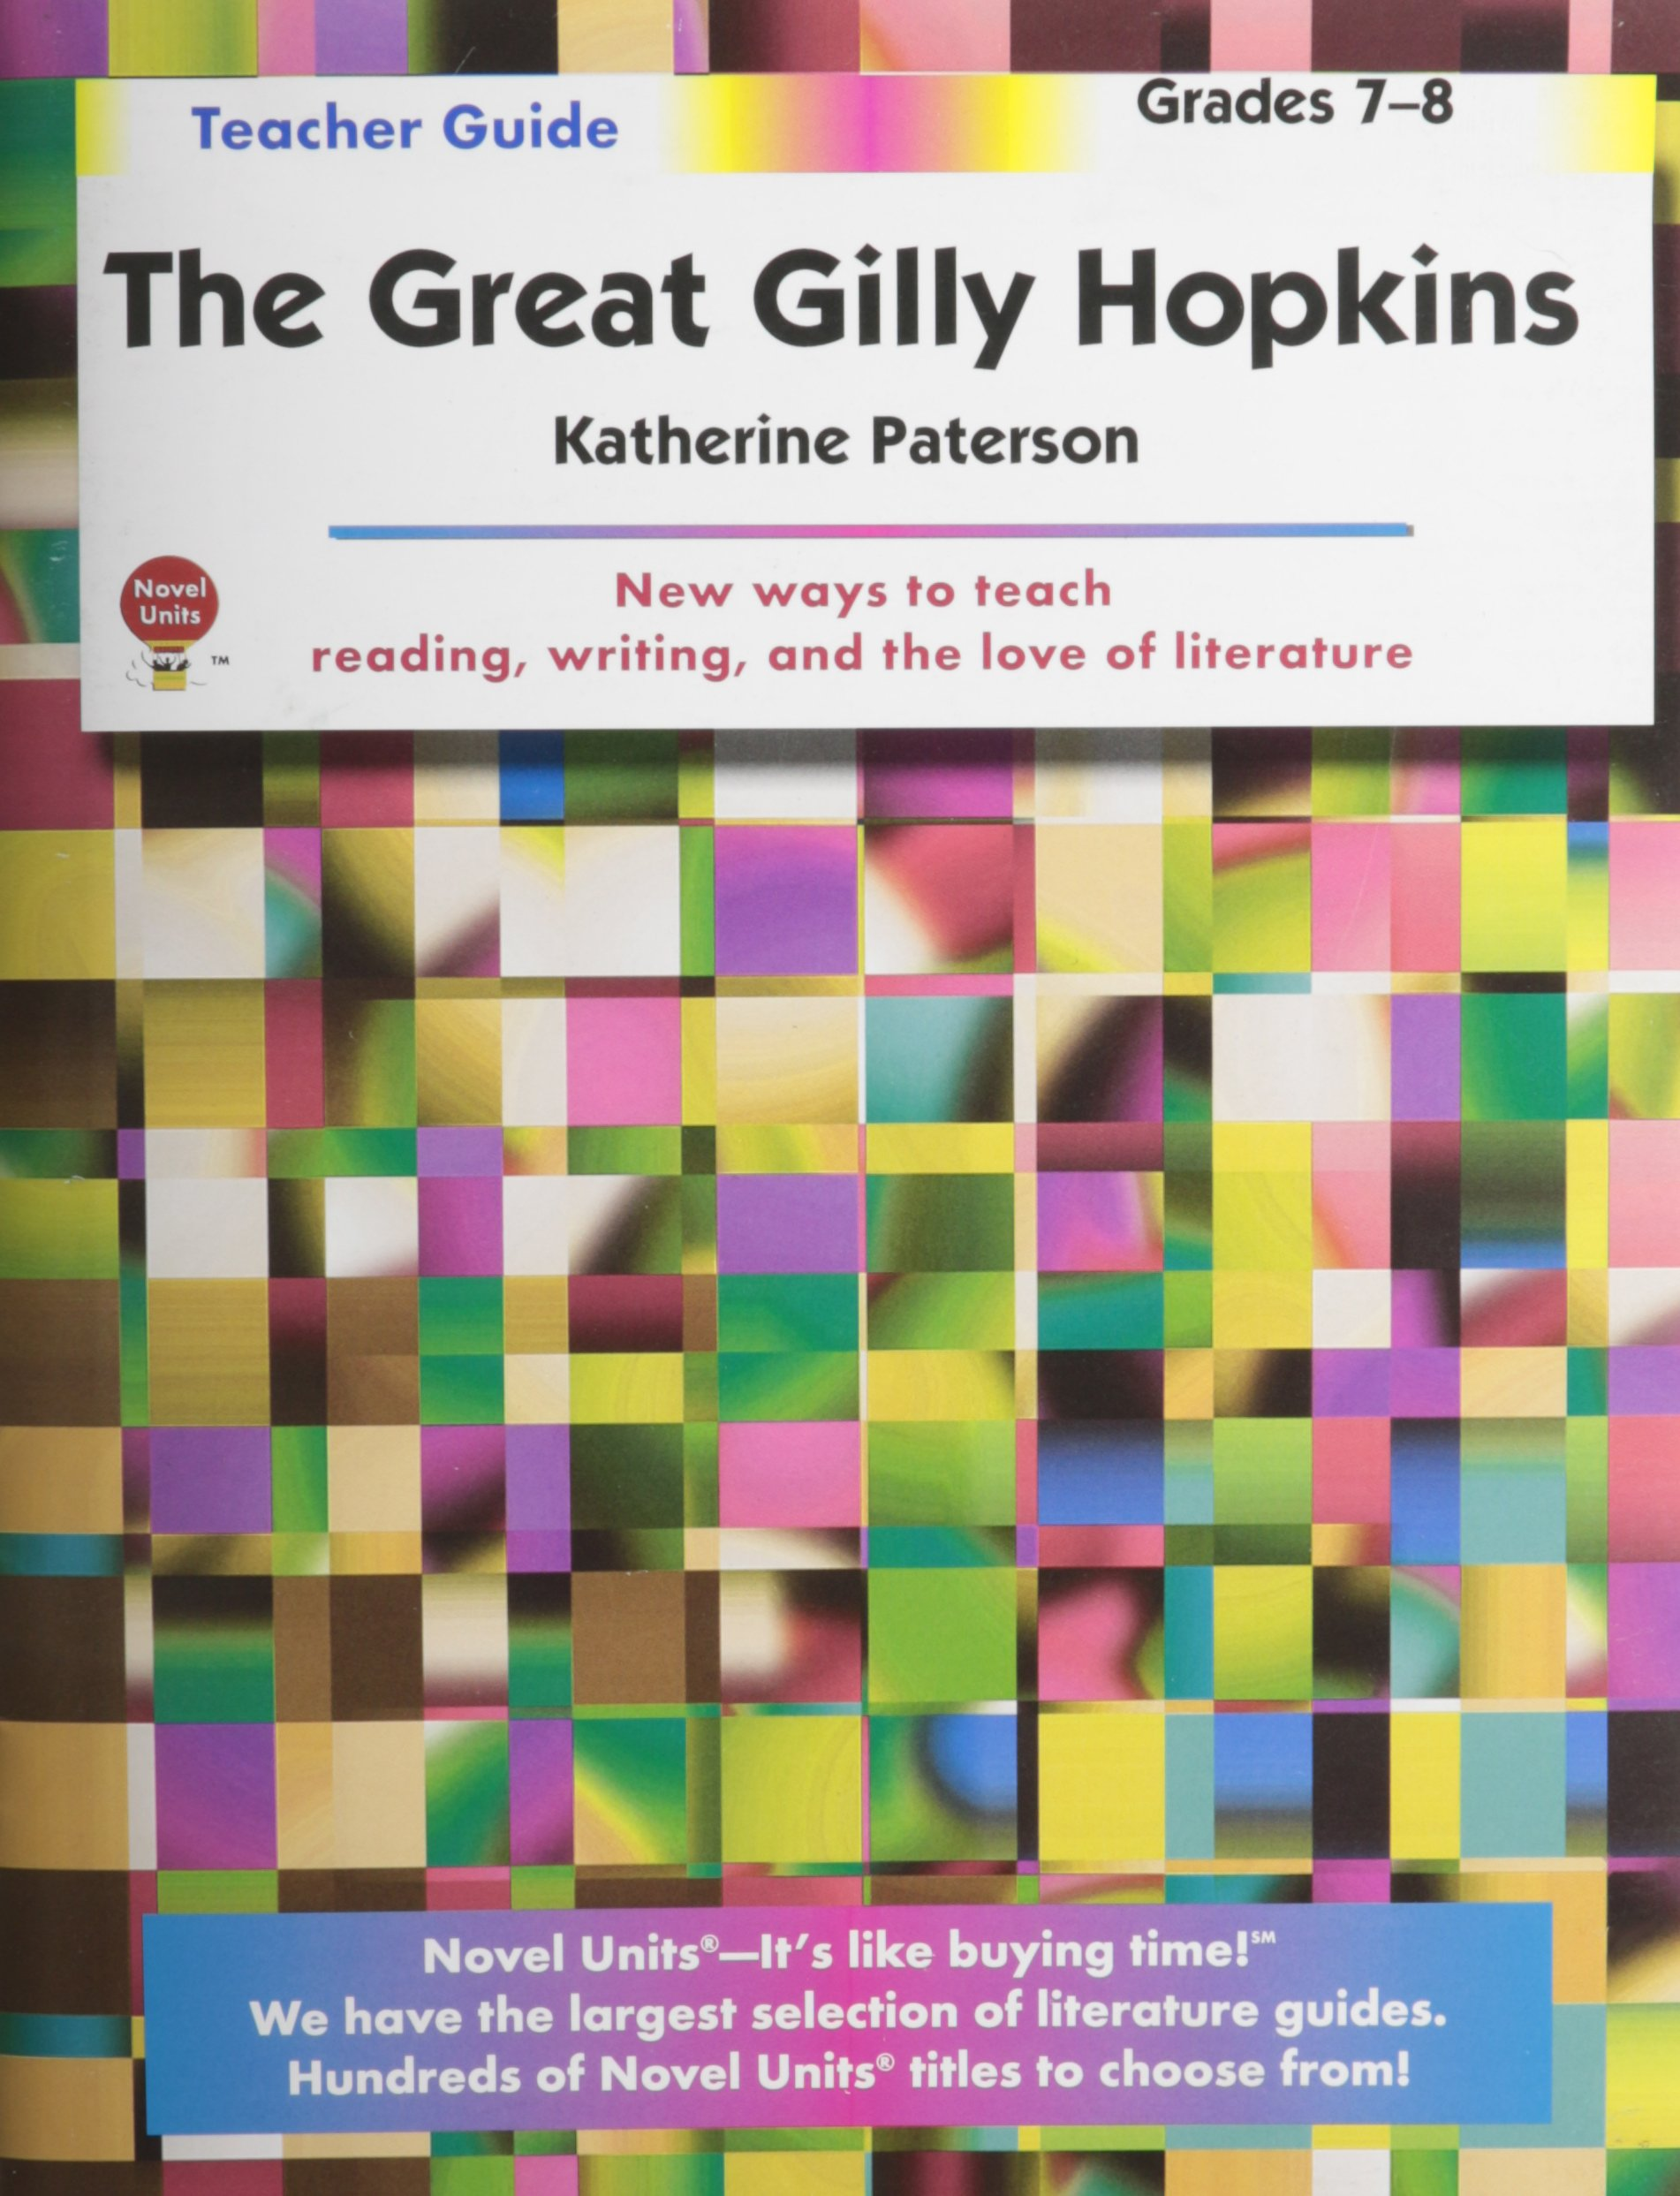 The great gilly hopkins teacher guide by novel units inc novel the great gilly hopkins teacher guide by novel units inc novel units inc 9781561374281 amazon books fandeluxe Images